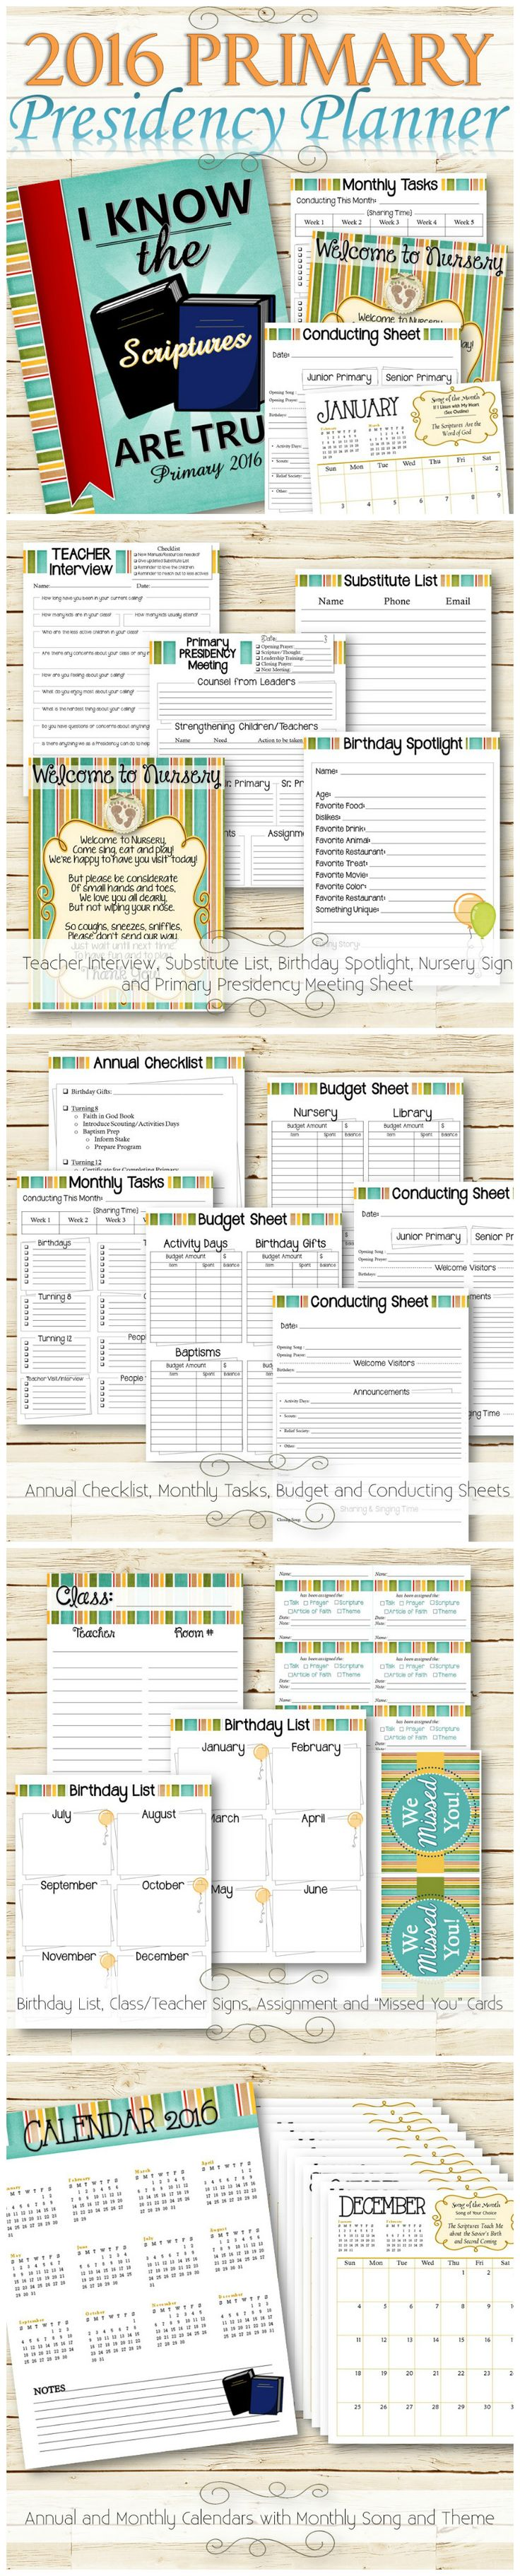 """A cute and simple way to make managing all the responsibilities and tasks in the LDS Primary Presidency Program easy. This 2016 all-in-one planner includes monthly songs, themes, calendars, task lists and more!   Planner Includes 31 Pages (Measures 8.5""""x11"""") - Annual Checklist - Monthly Task List - Budget Sheets - Conducting Sheet and more!"""